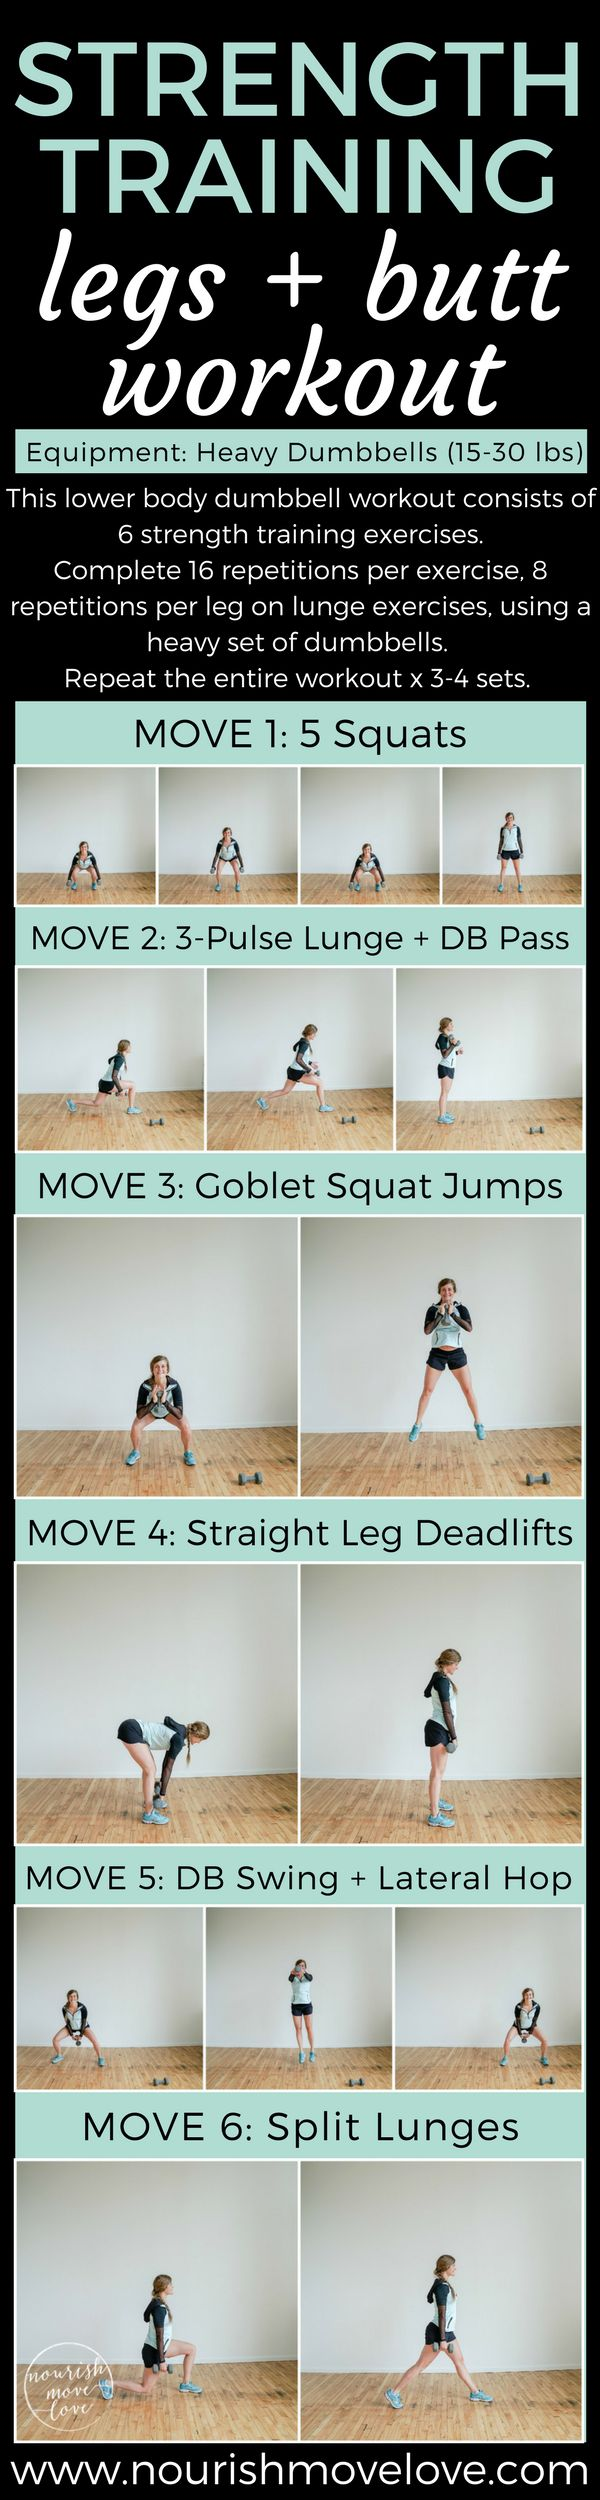 Build lean, strong legs with this strictly strength lower body dumbbell workout. Leg day workout pairing strength exercises with weight plyometrics. 6 exercises, repeat 3-4 sets, heavy set of dumbbells. At-home workout for glutes, butt, legs, thighs. Done in under 30 minutes.